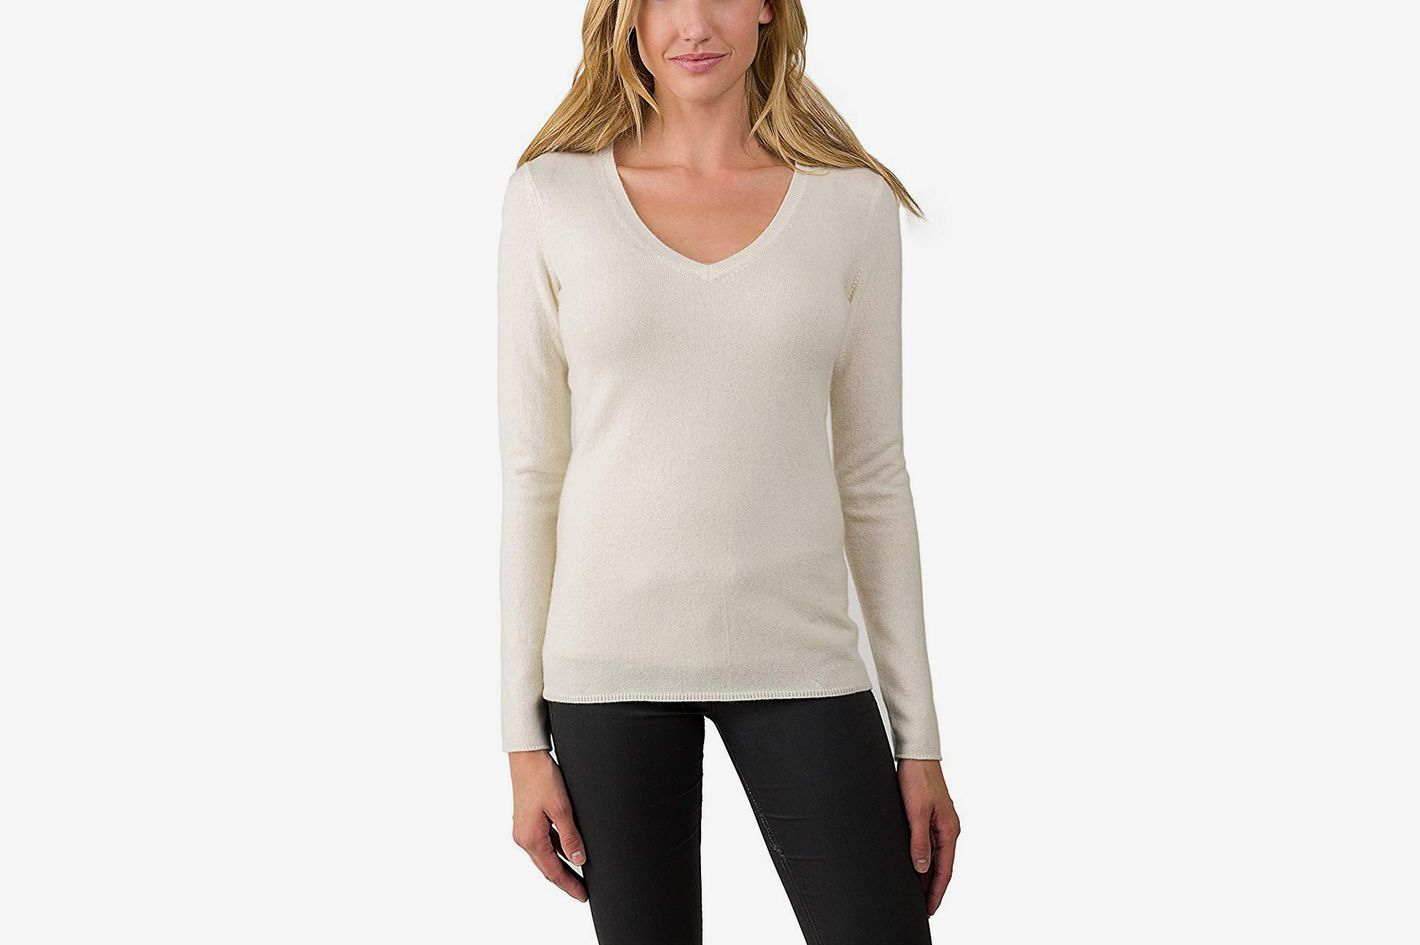 JENNIE LIU Women s 100% Pure Cashmere Long Sleeve Pullover V Neck Sweater 1bae041b0